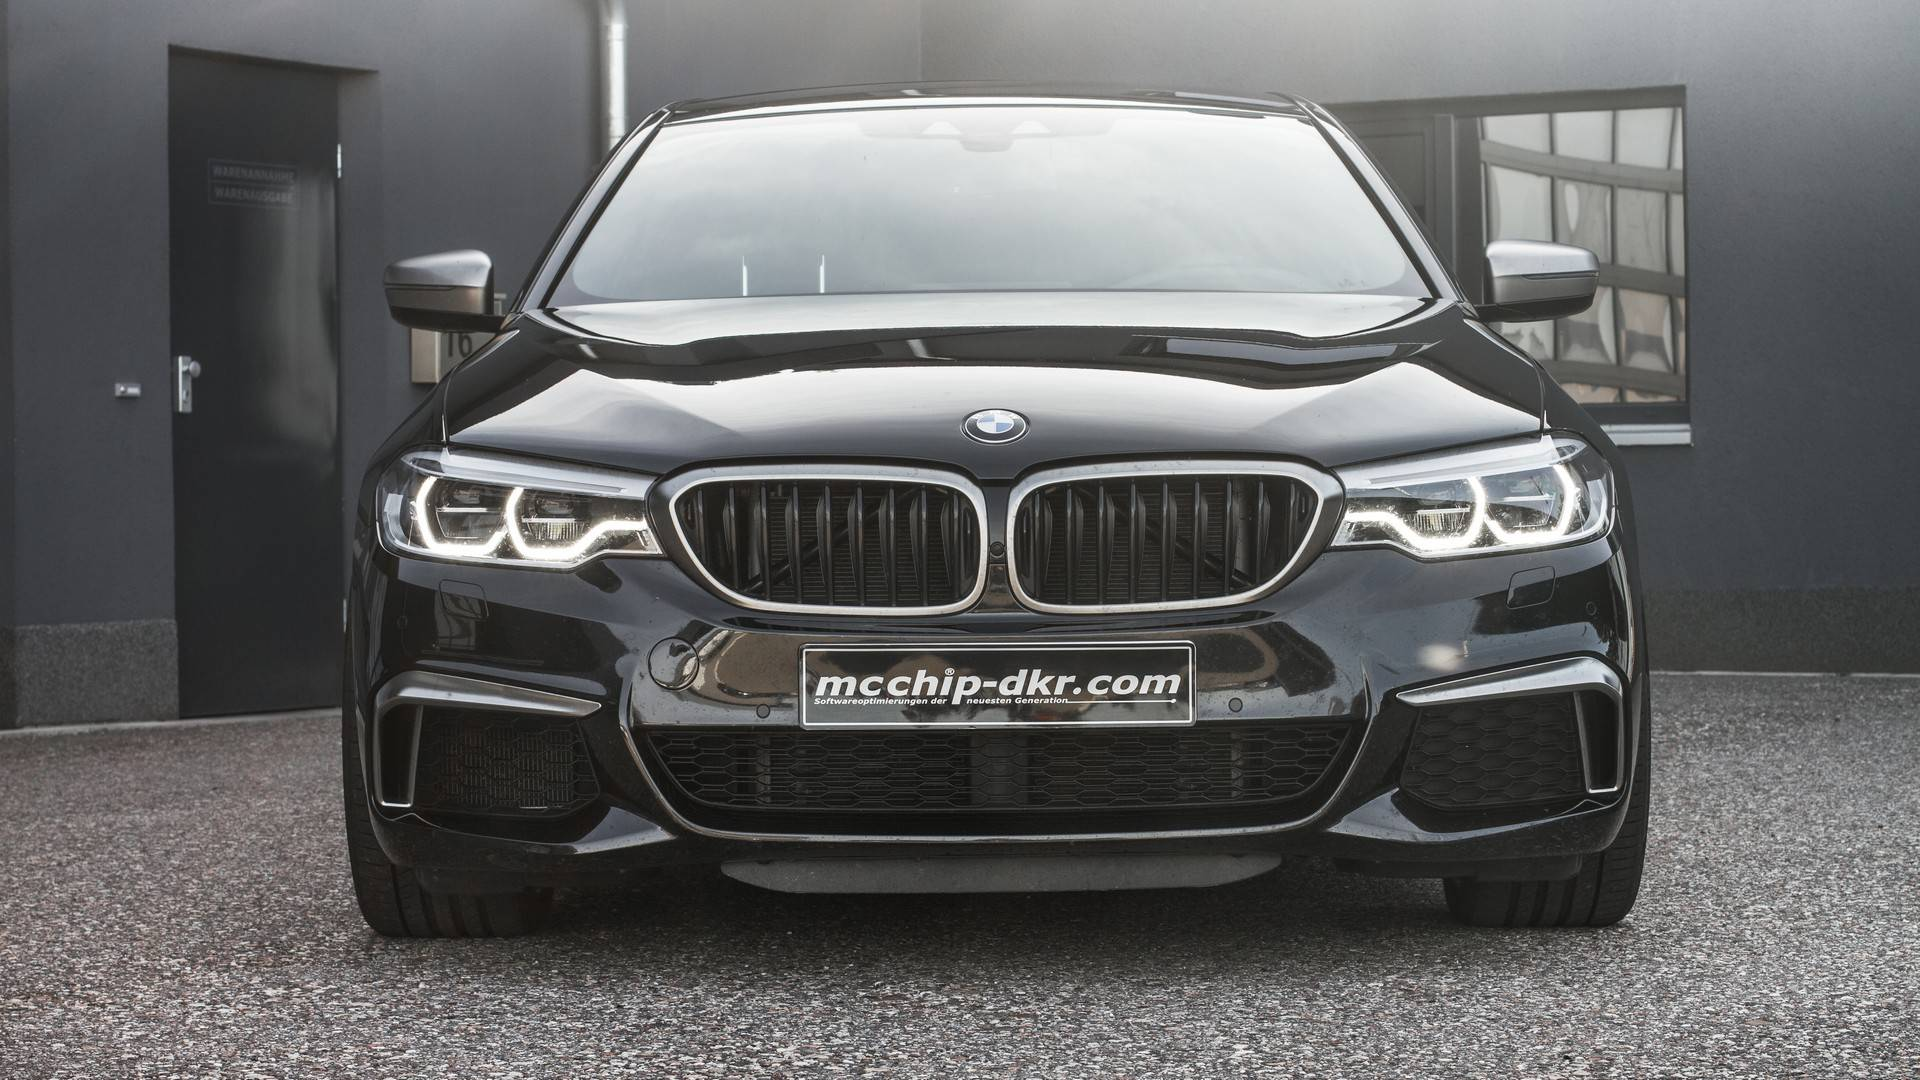 BMW_M550d_xDrive_by mcchip-dkr_05